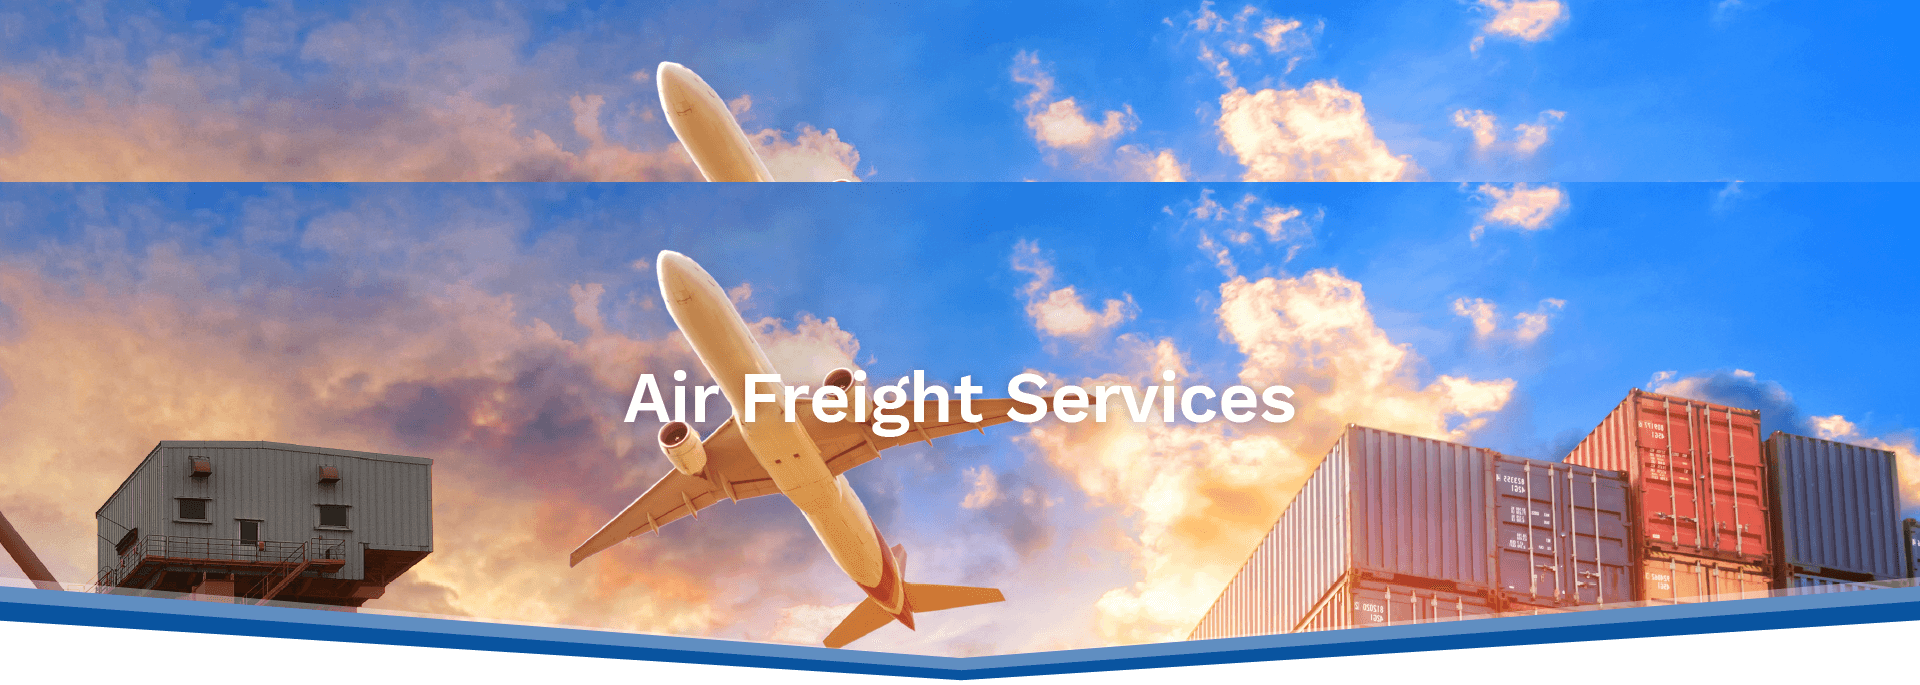 A2B World Logistics Air Freight